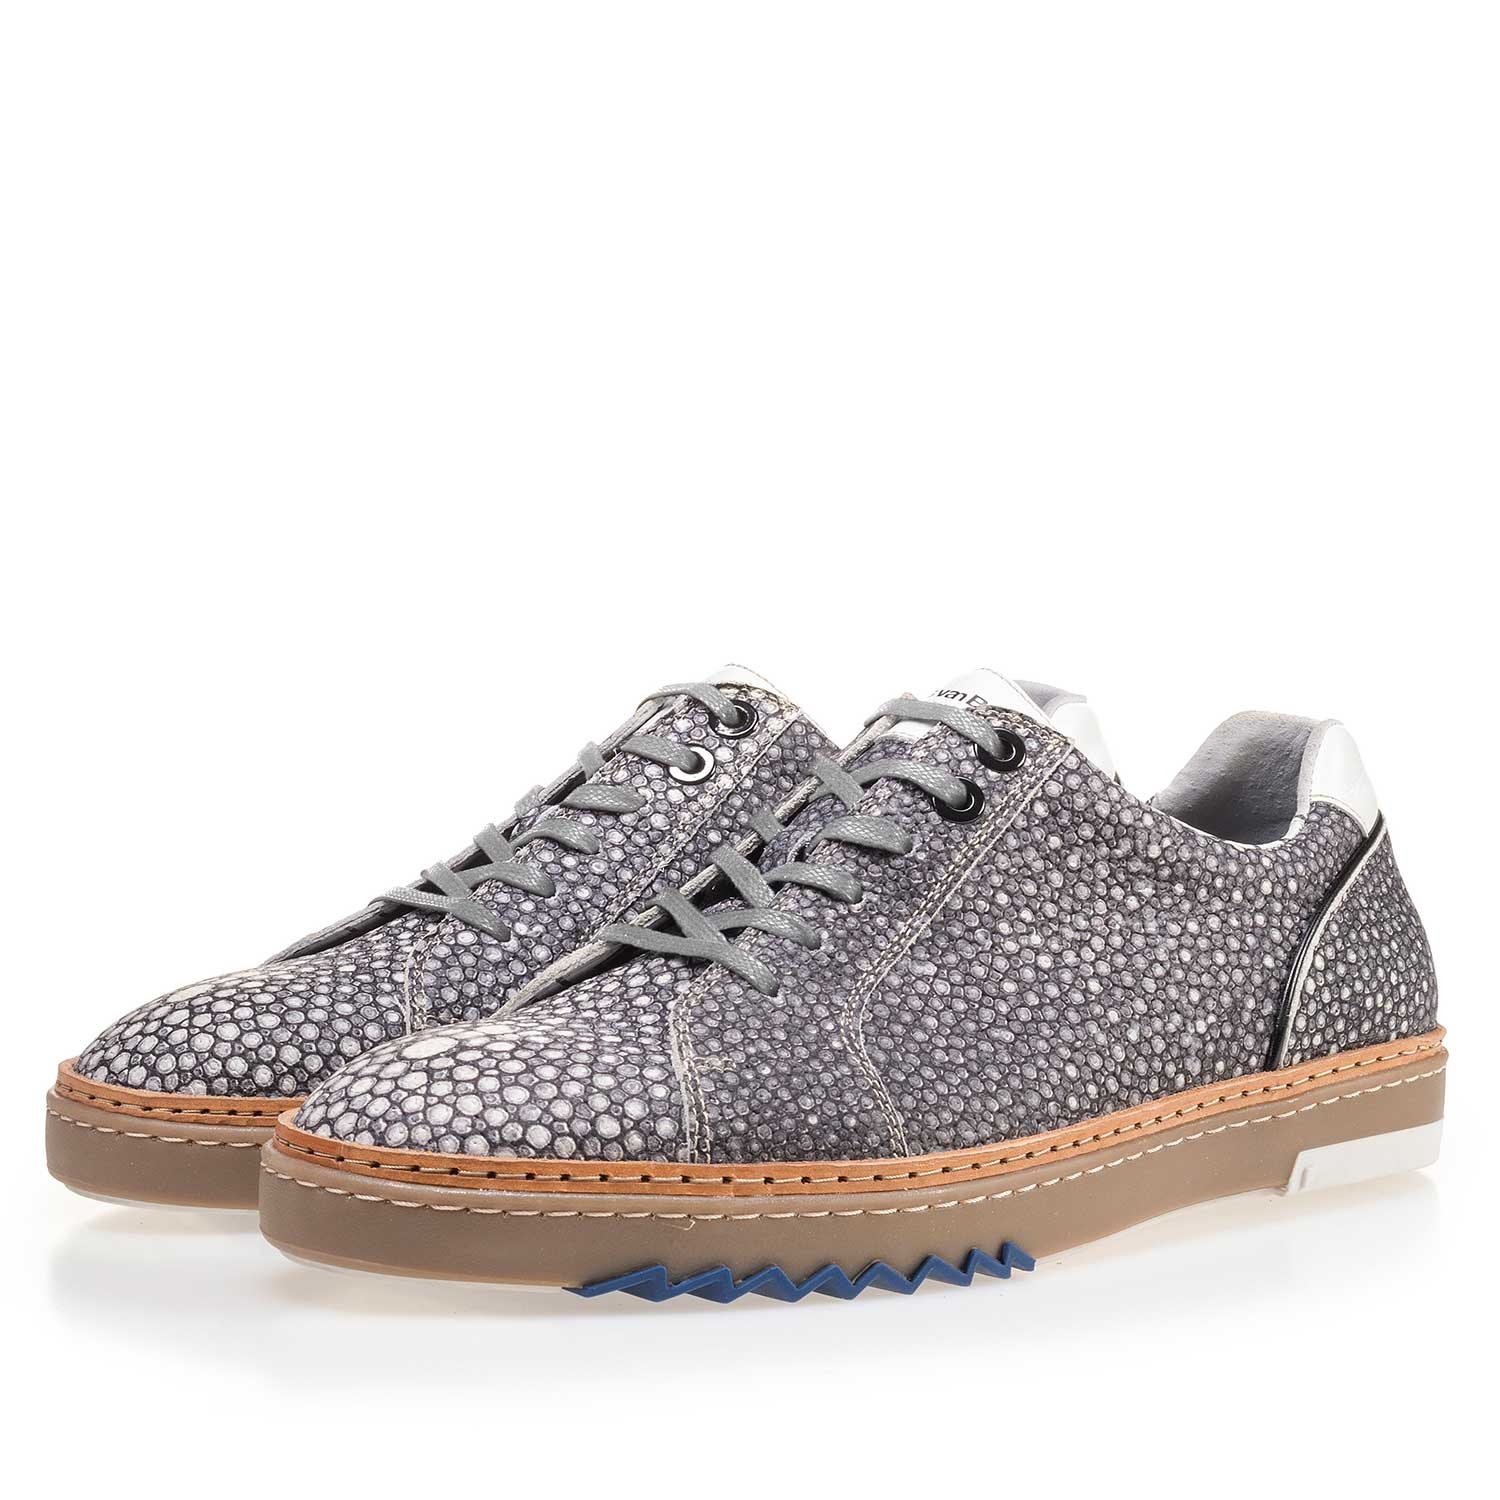 14057/00 - Grey, patterned leather sneaker